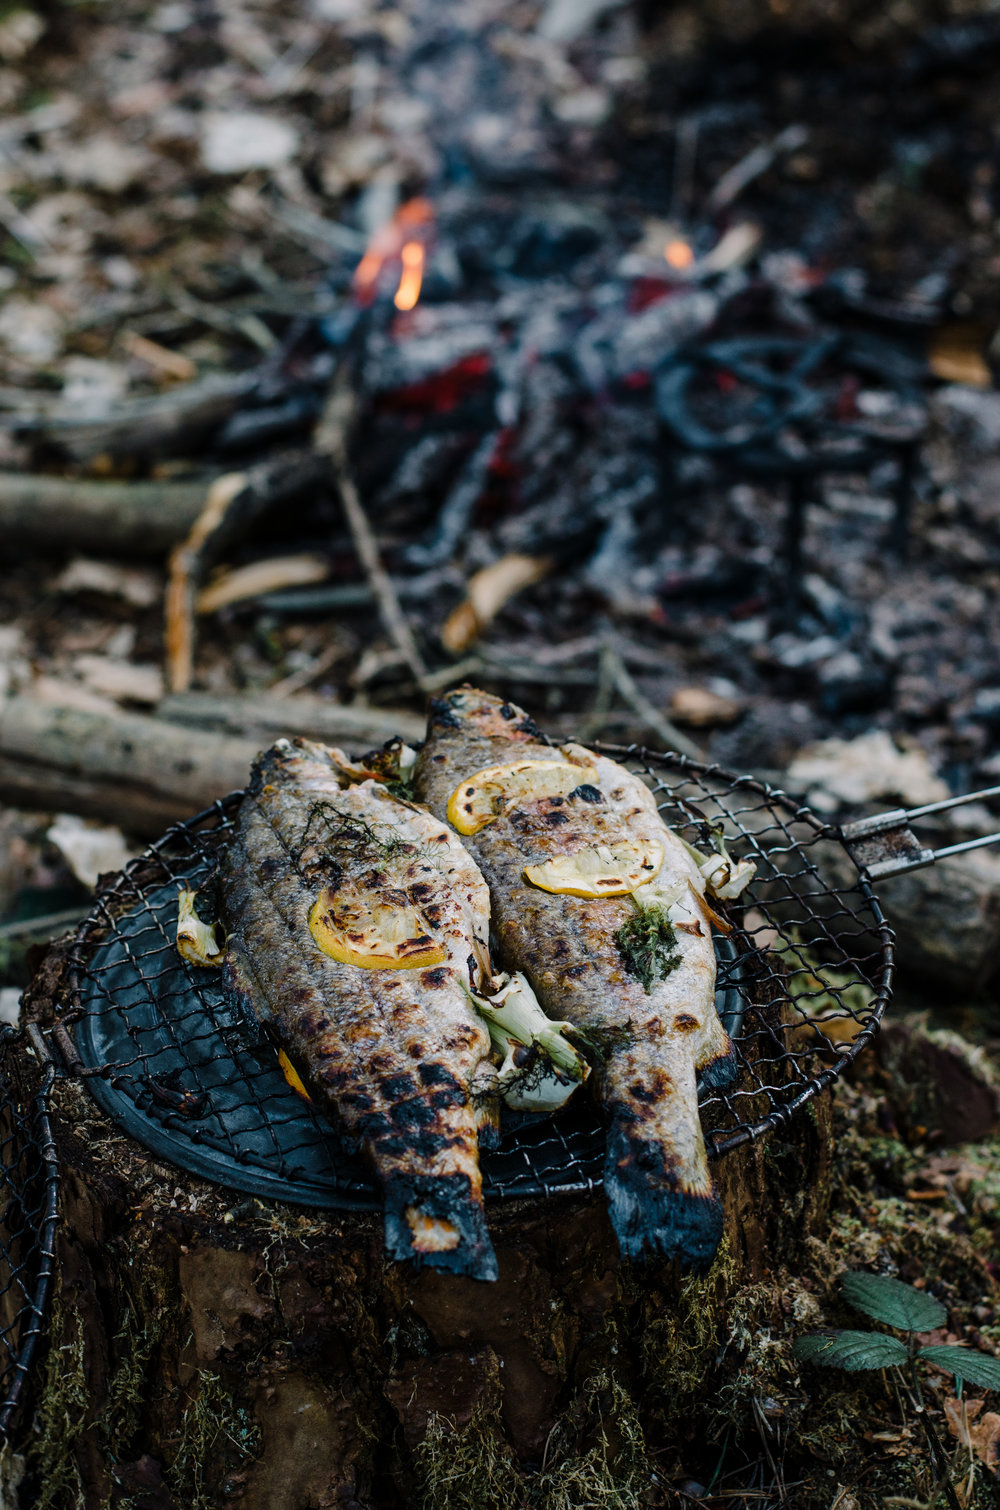 Fire & Wild- Wild Garlic & Campfire Dinner - Aiste Saulyte Photography-310.jpg